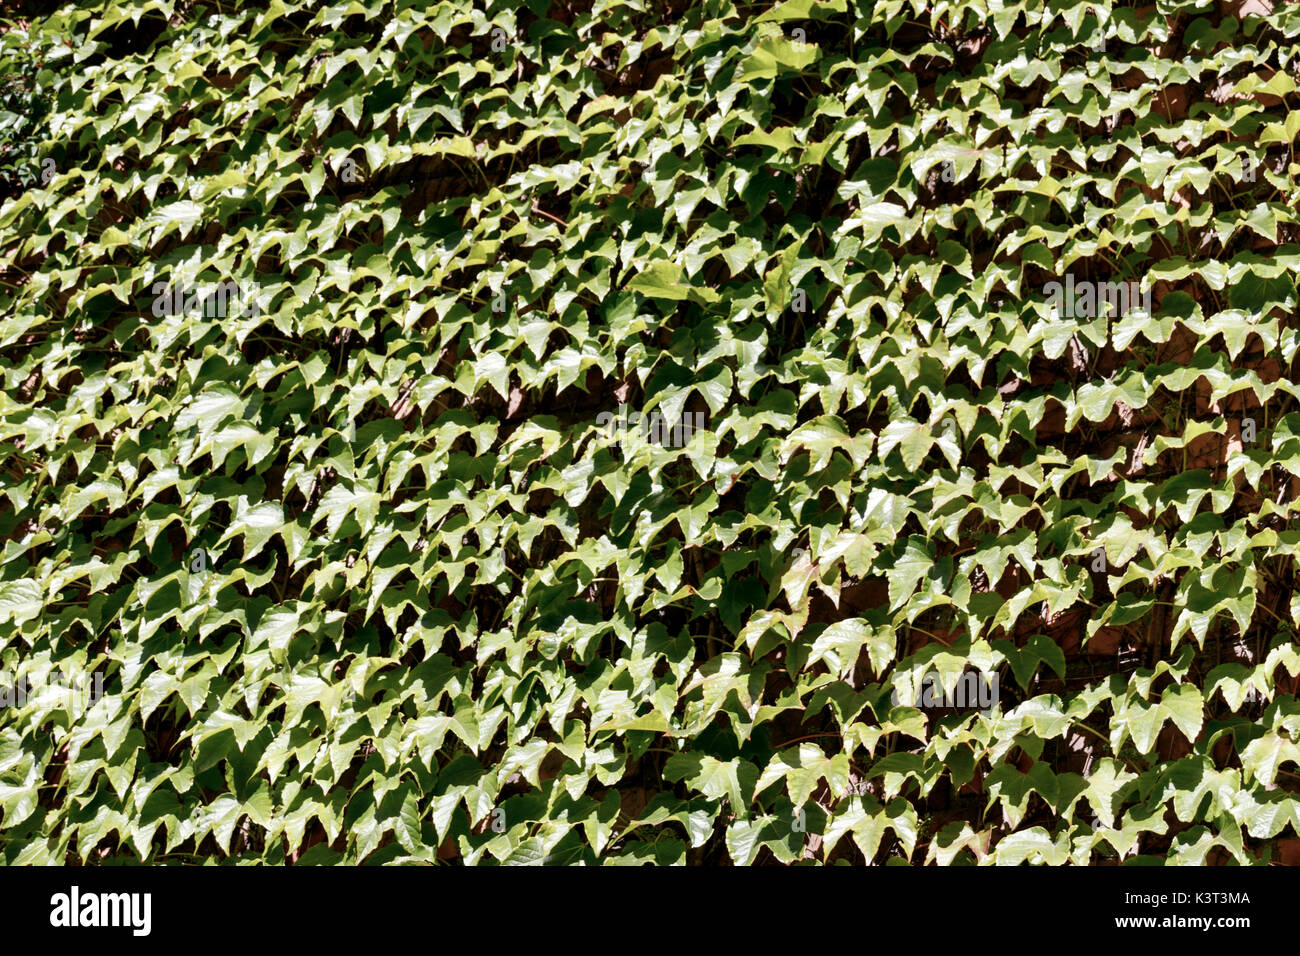 Textural background of green leaves - Stock Image